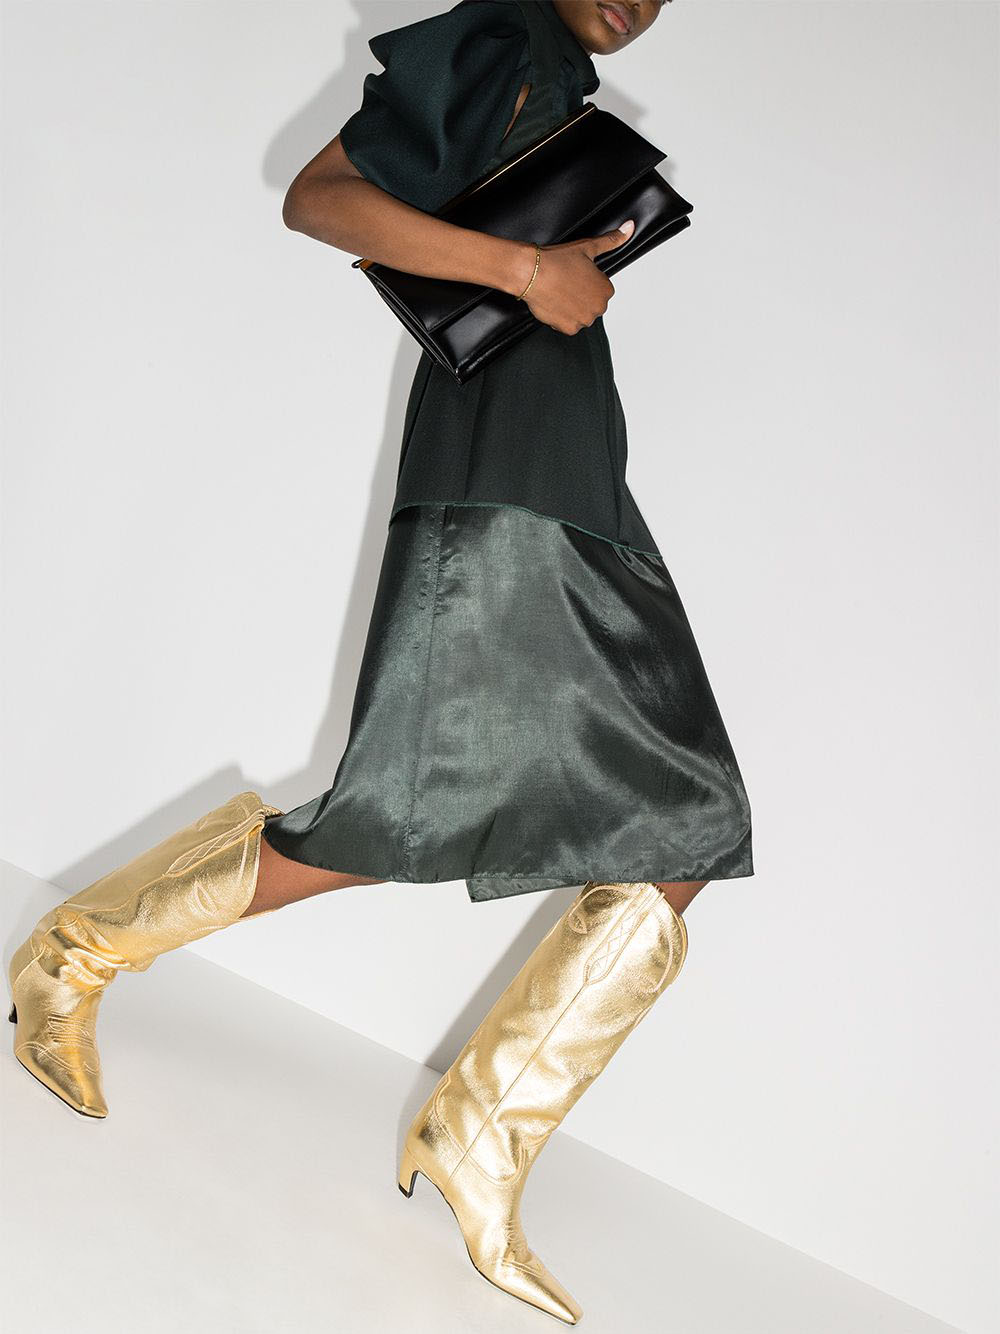 The Khaite Dallas is also available in knee-high silhouettes